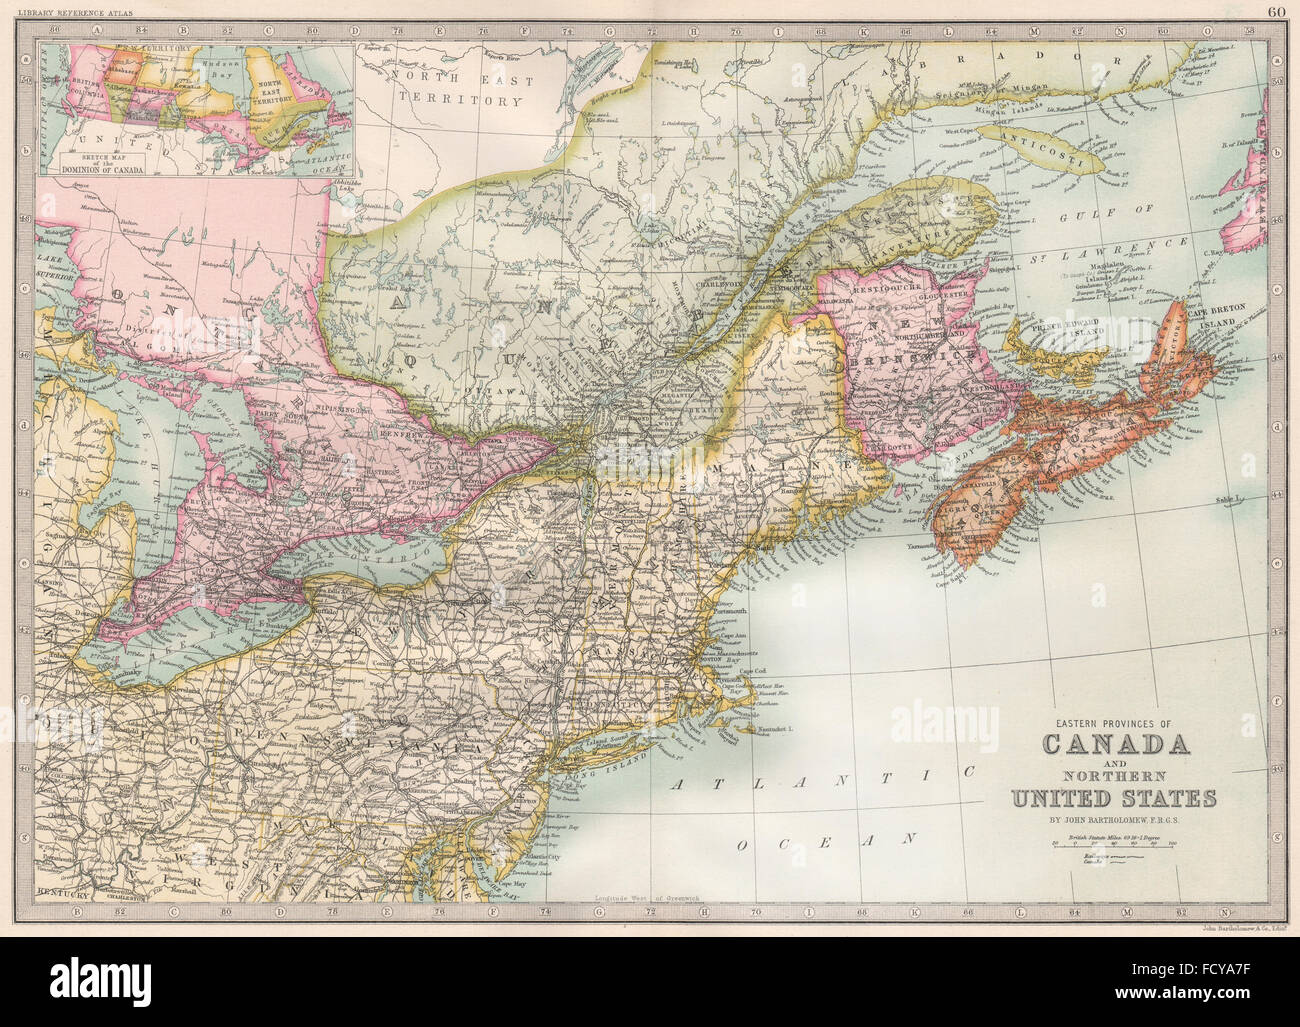 CANADA/US ATLANTIC COAST: Eastern seaboard. BARTHOLOMEW, 1890 antique map - Stock Image